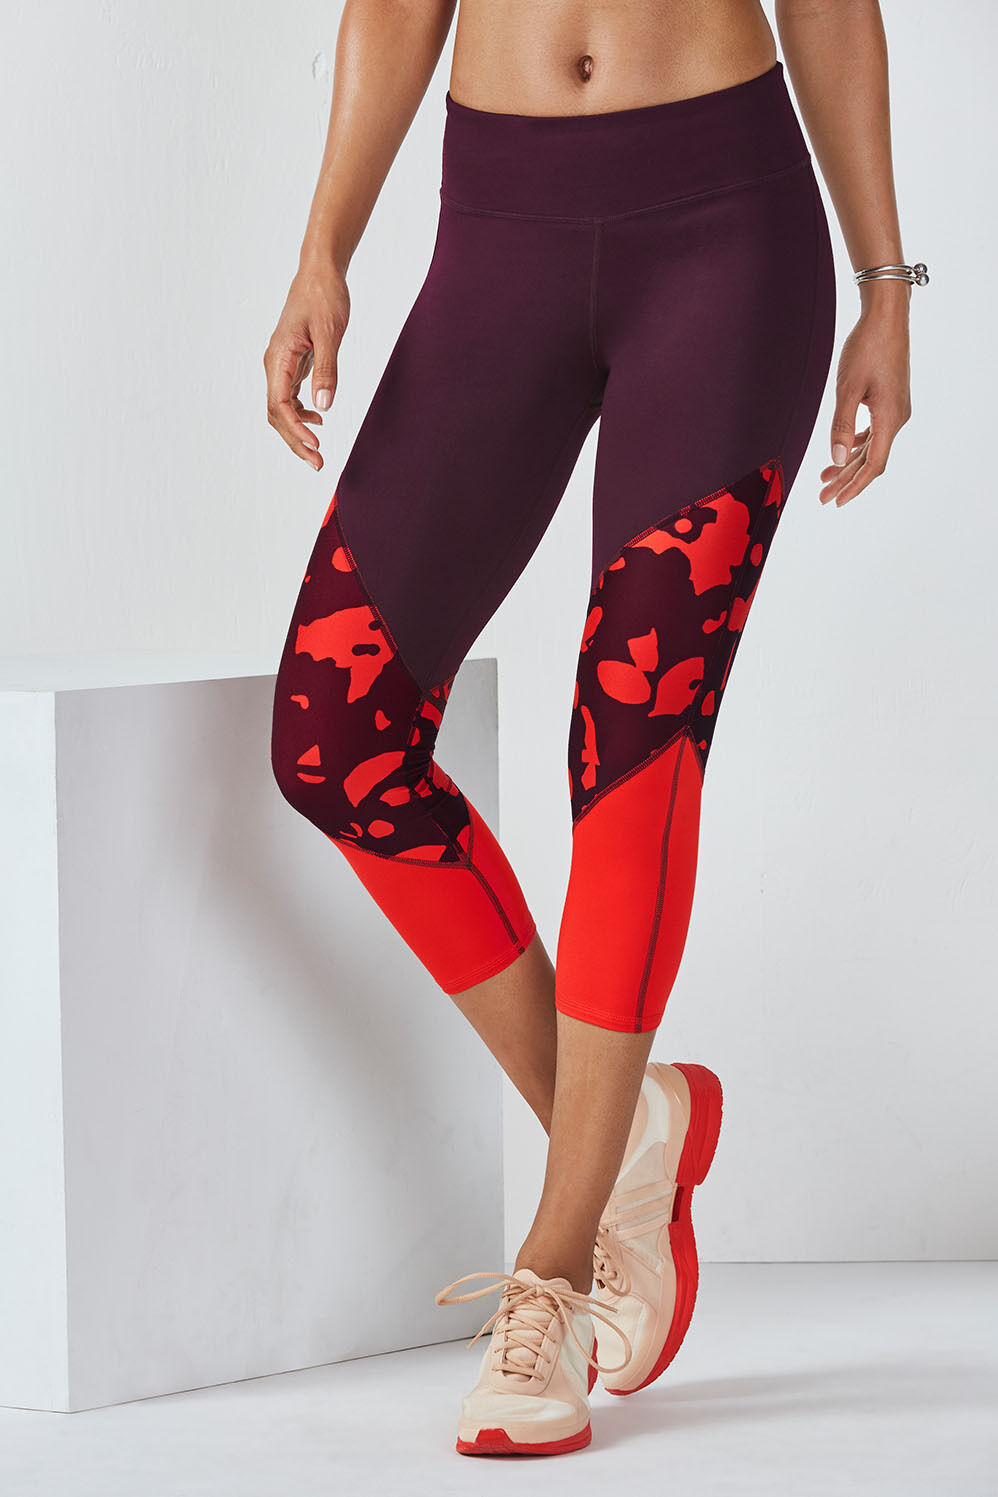 BNWT Fabletics Brogan Capri in Burgundy-Bonsoir Floral choose XS or Small